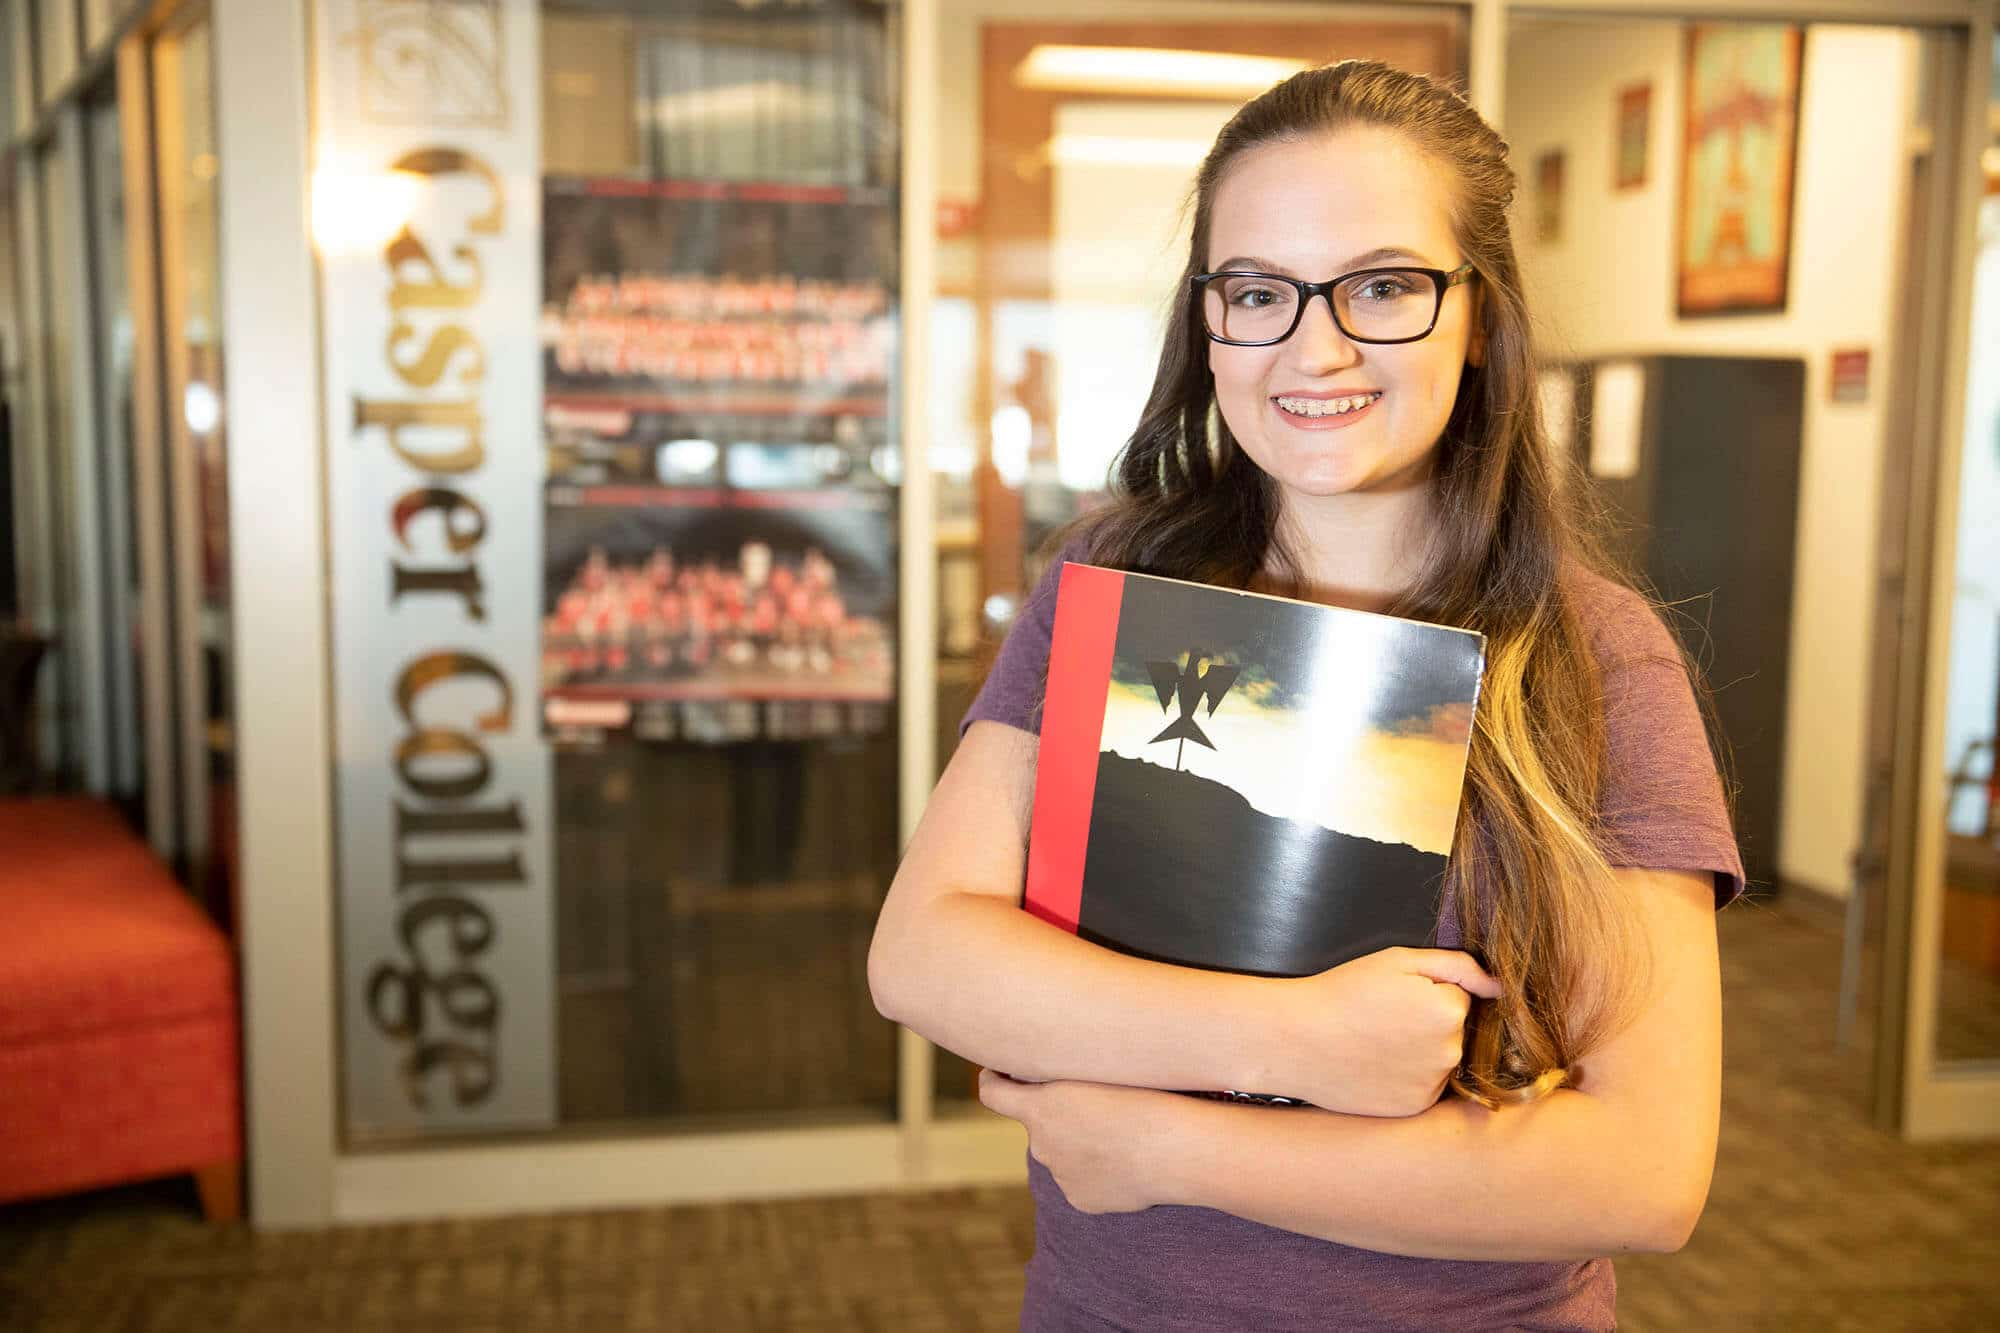 Female student smiling and holding a folder with an office behind her that says Casper College on the window